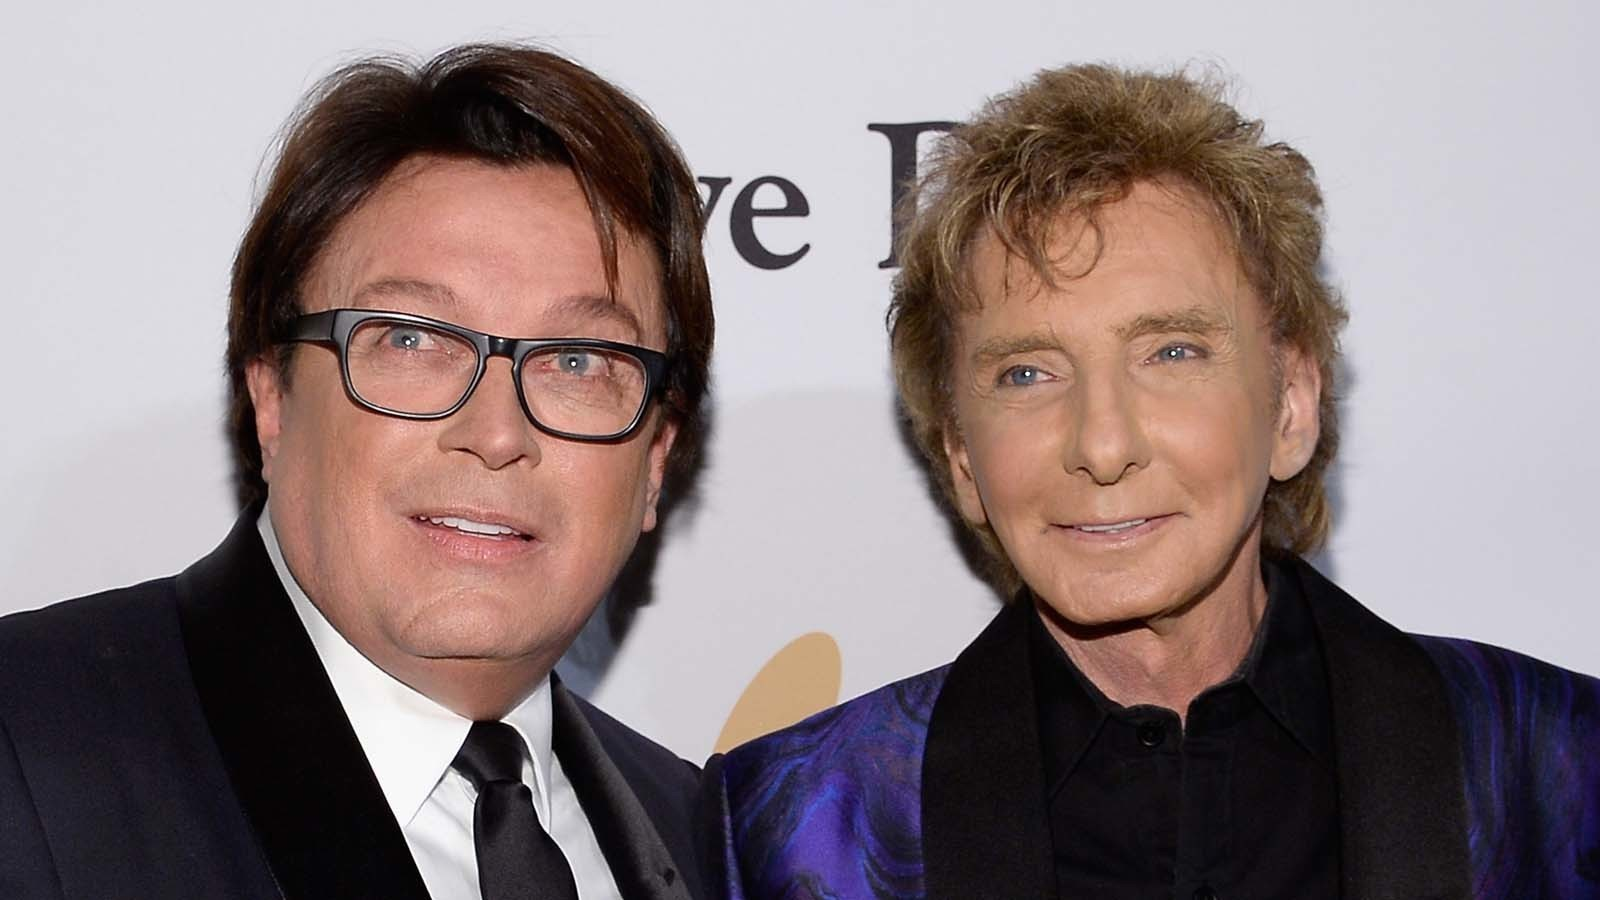 Garry Kief, left, and Barry Manilow in 2016.